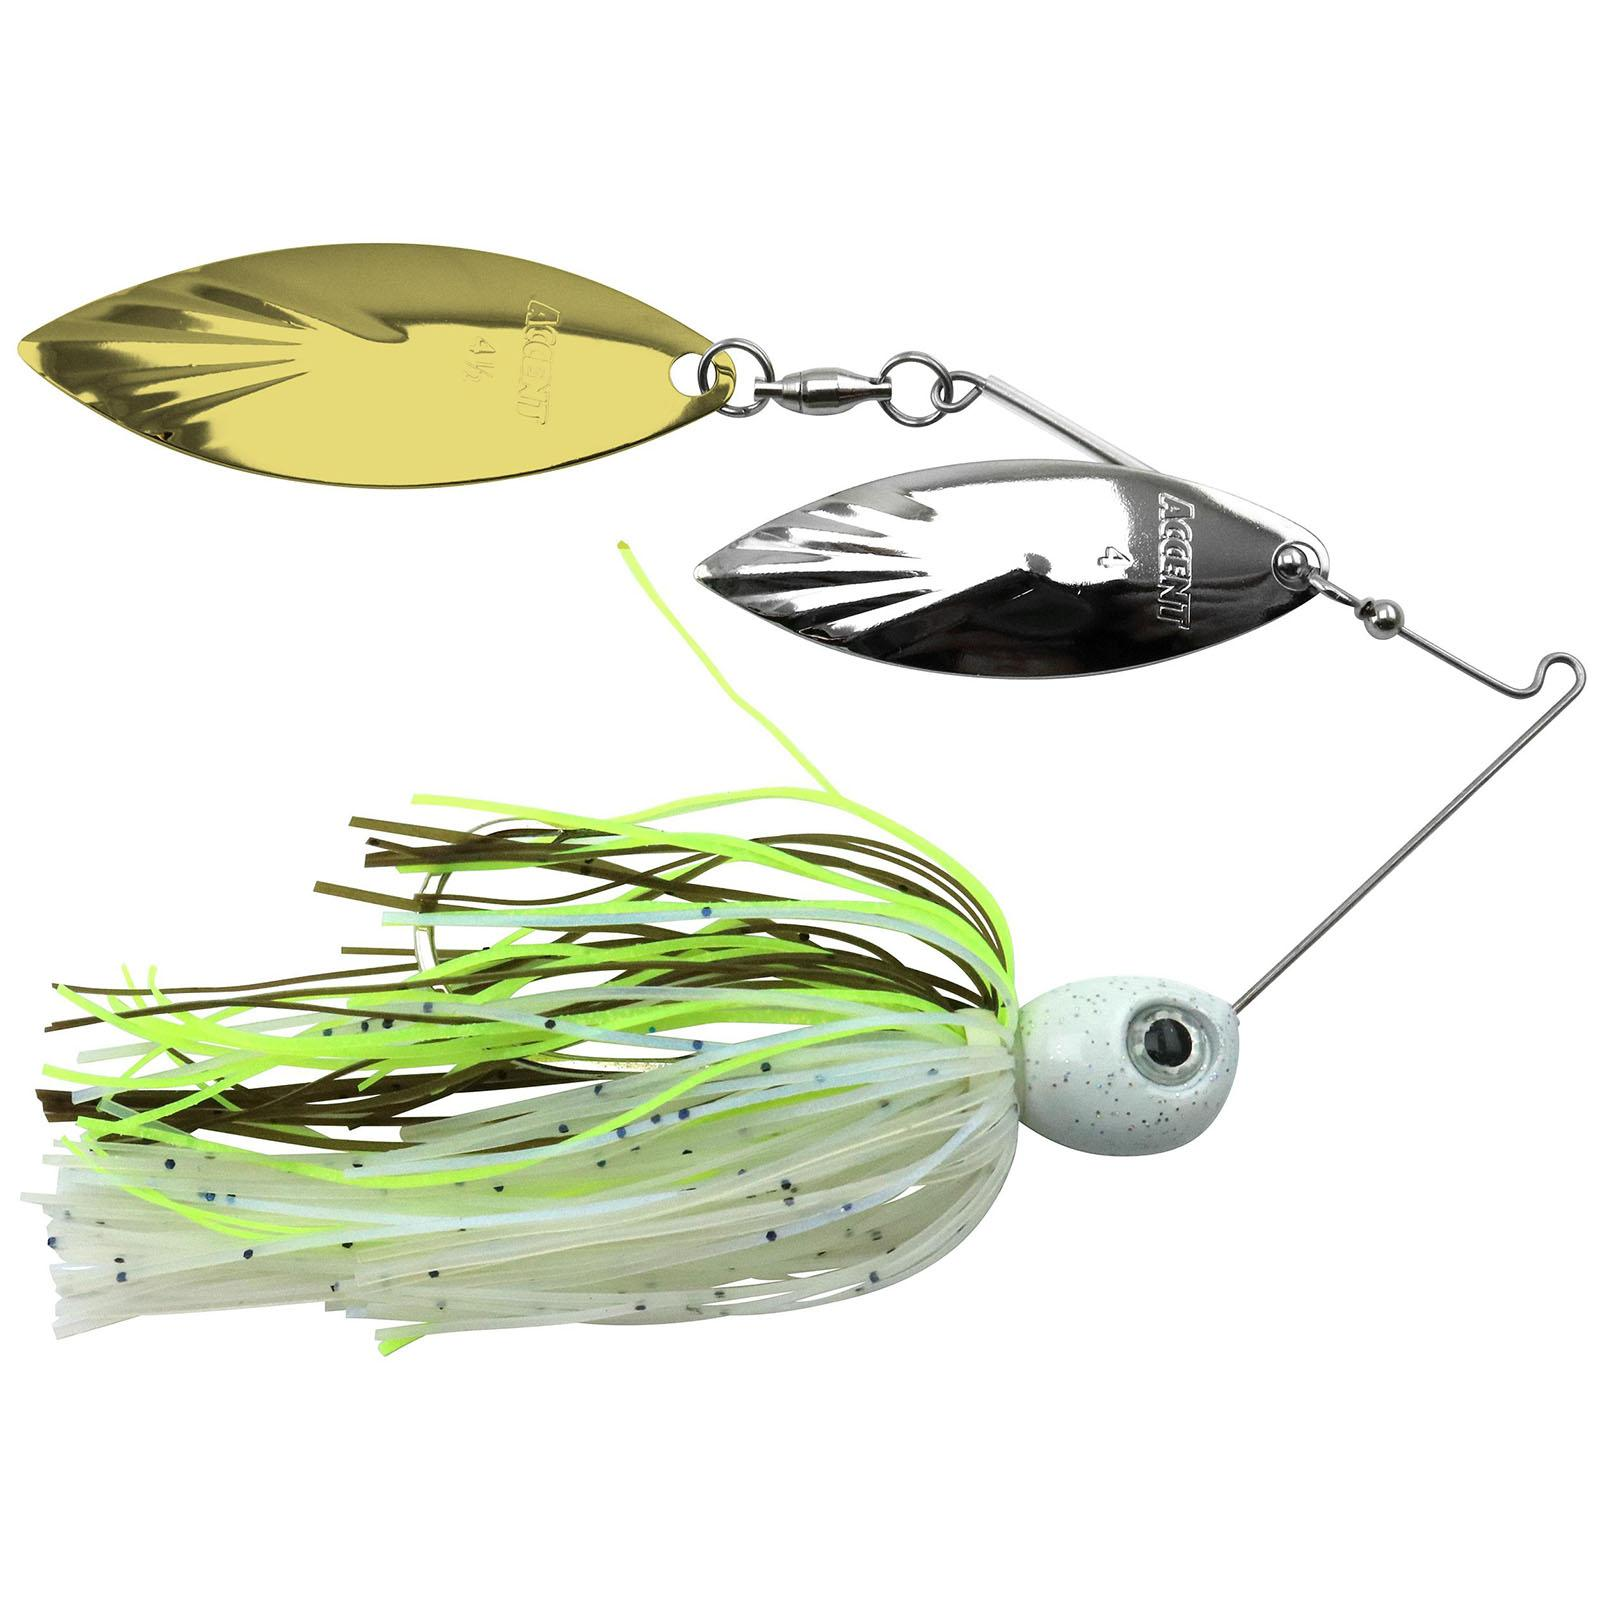 Accent River Special Double Willow Spinnerbait Color Nickel/Gold Blades - Threadfin Shad Skirt Weight 3/8 oz thumbnail